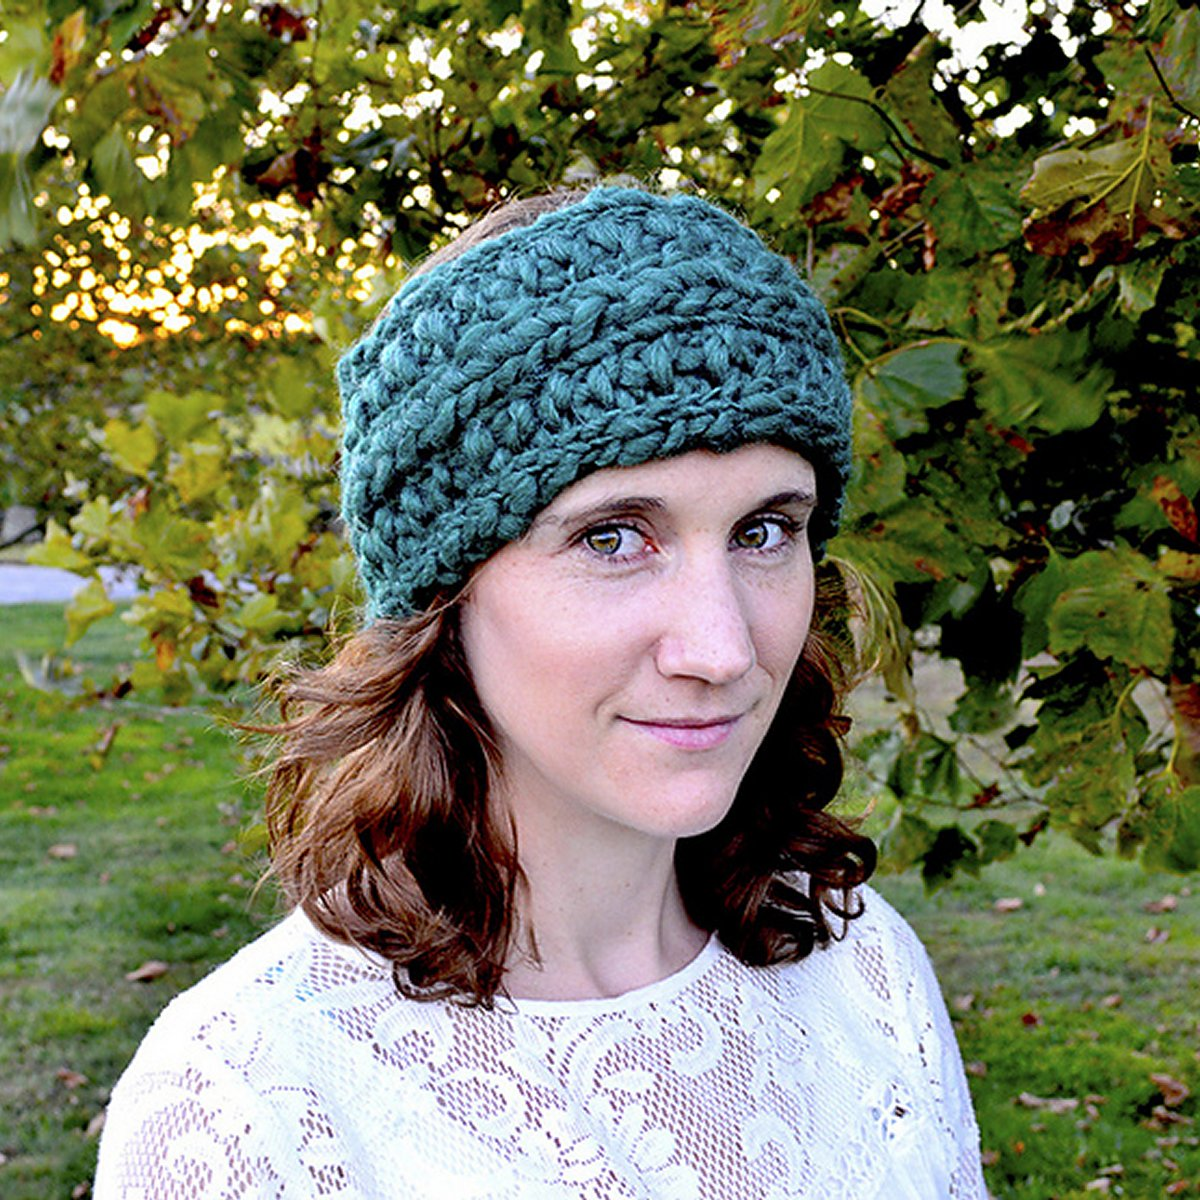 Knit Collage Patterns - Cozy Headband Collection - PDF ...